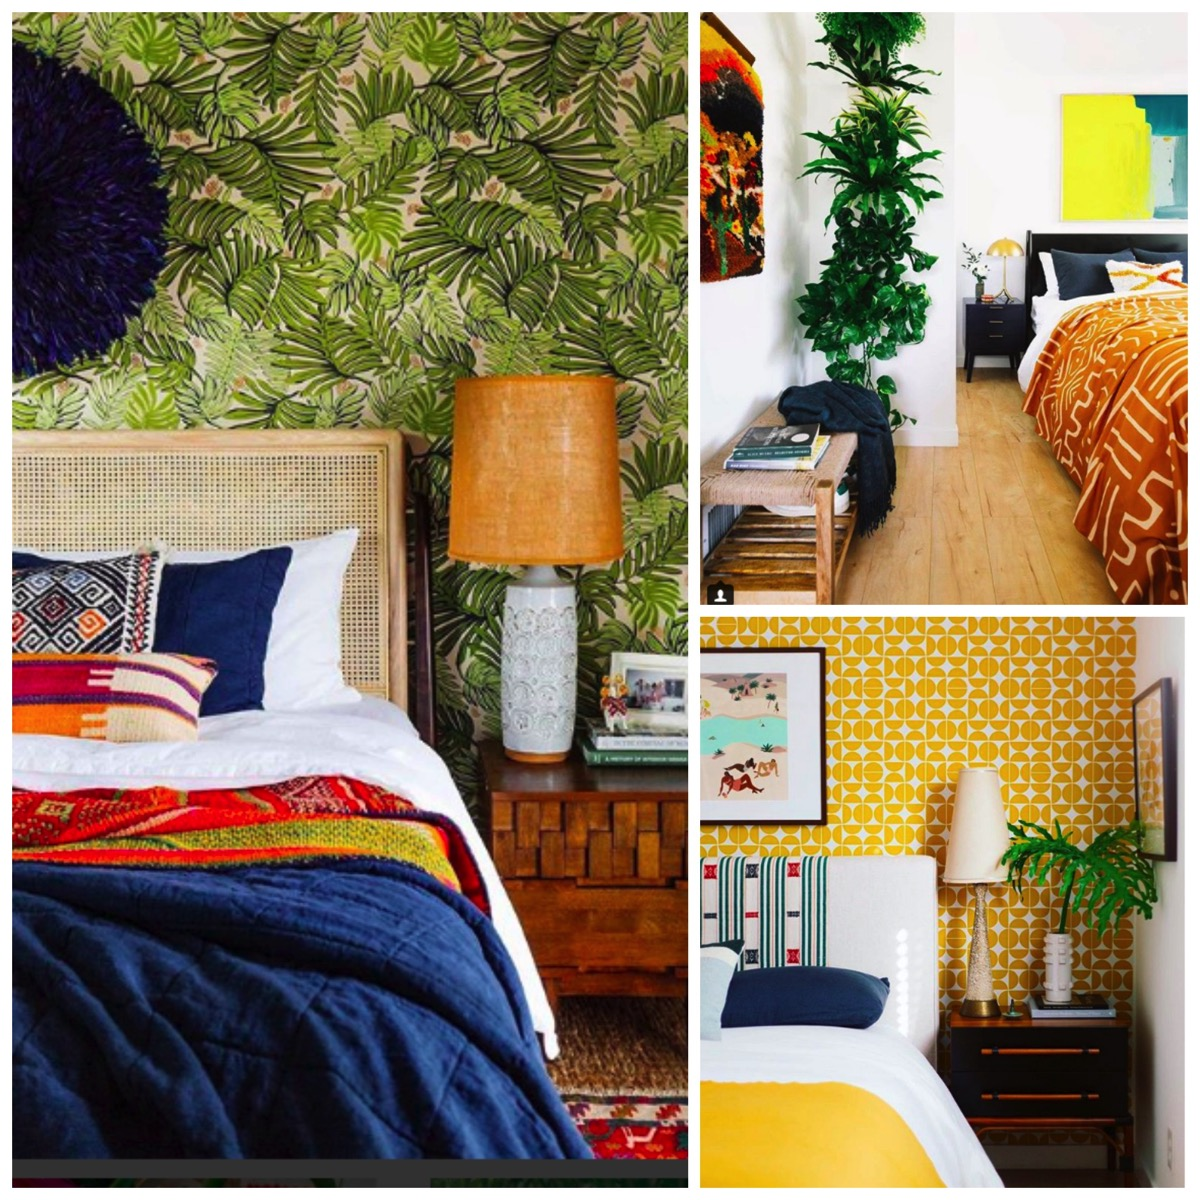 Dabito home tour bedroom boho vintage modern